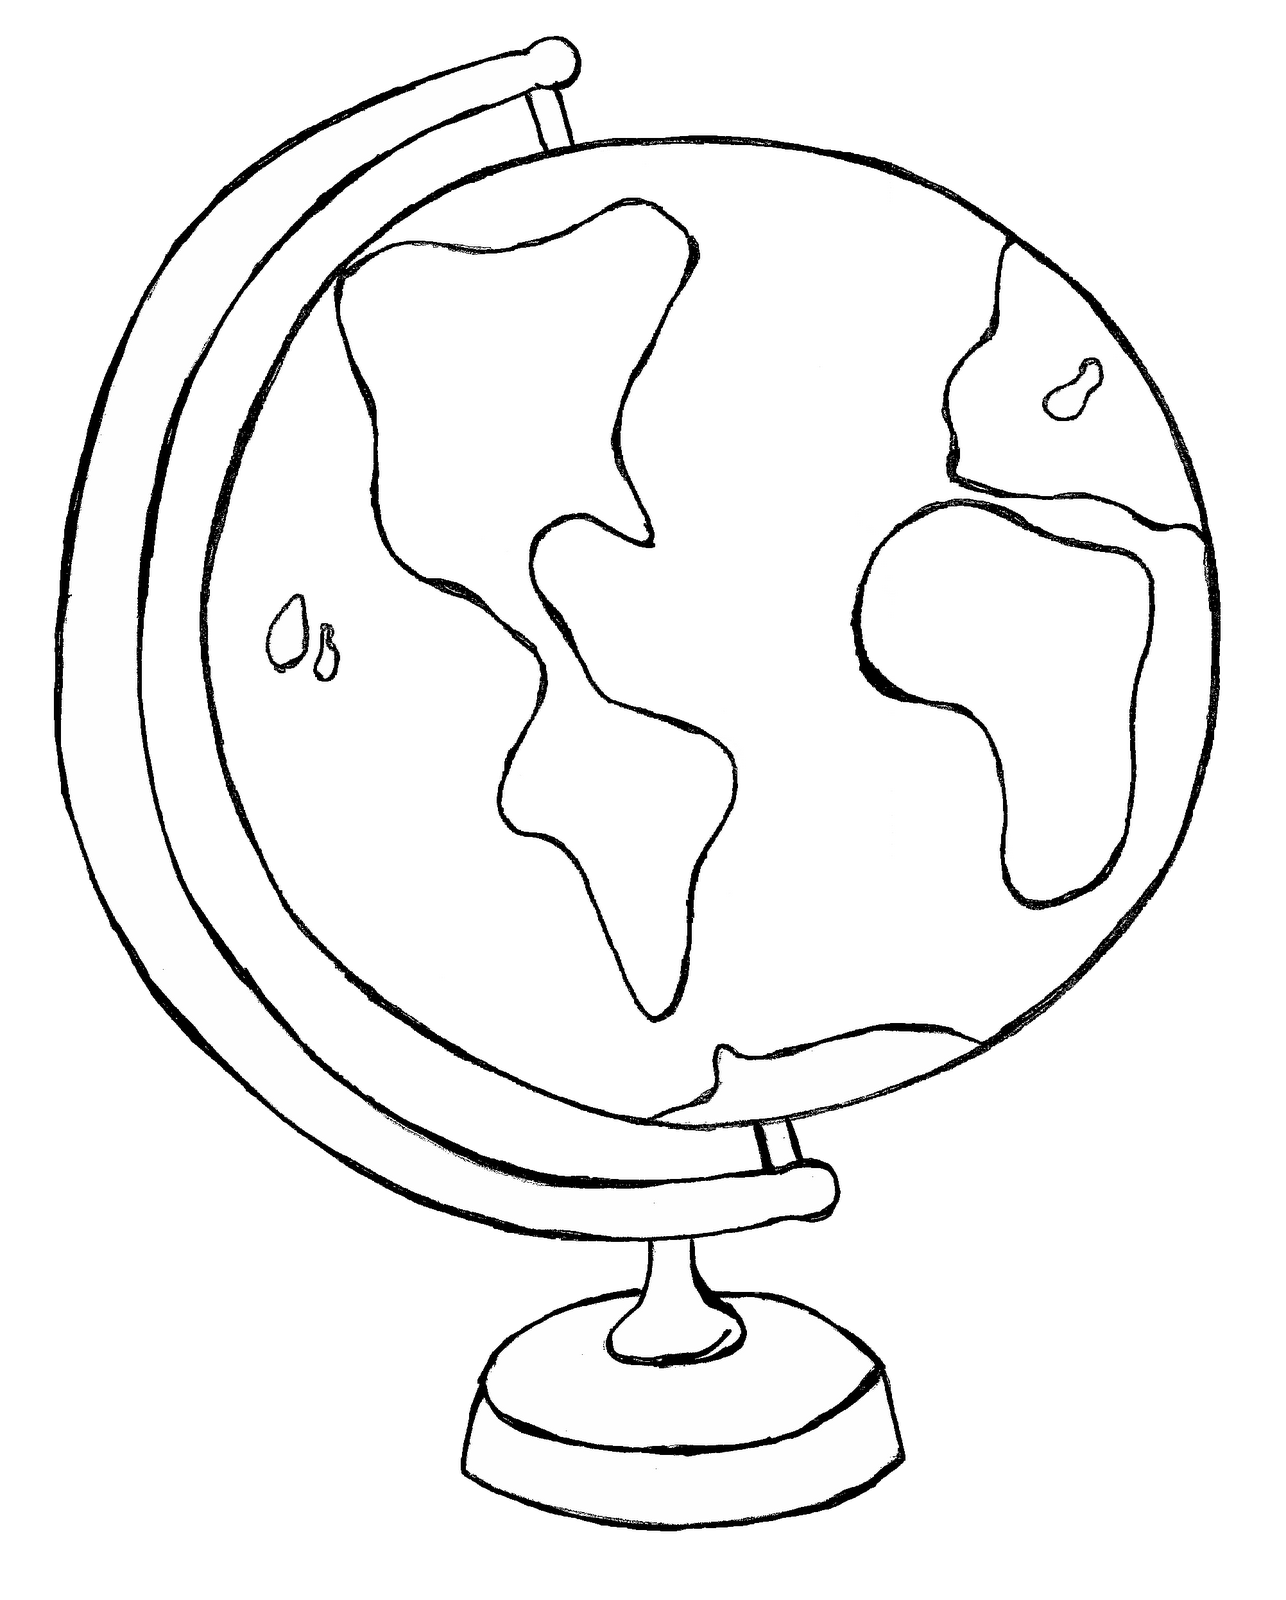 Clip Art Of World Clipart 2 Image 5 2